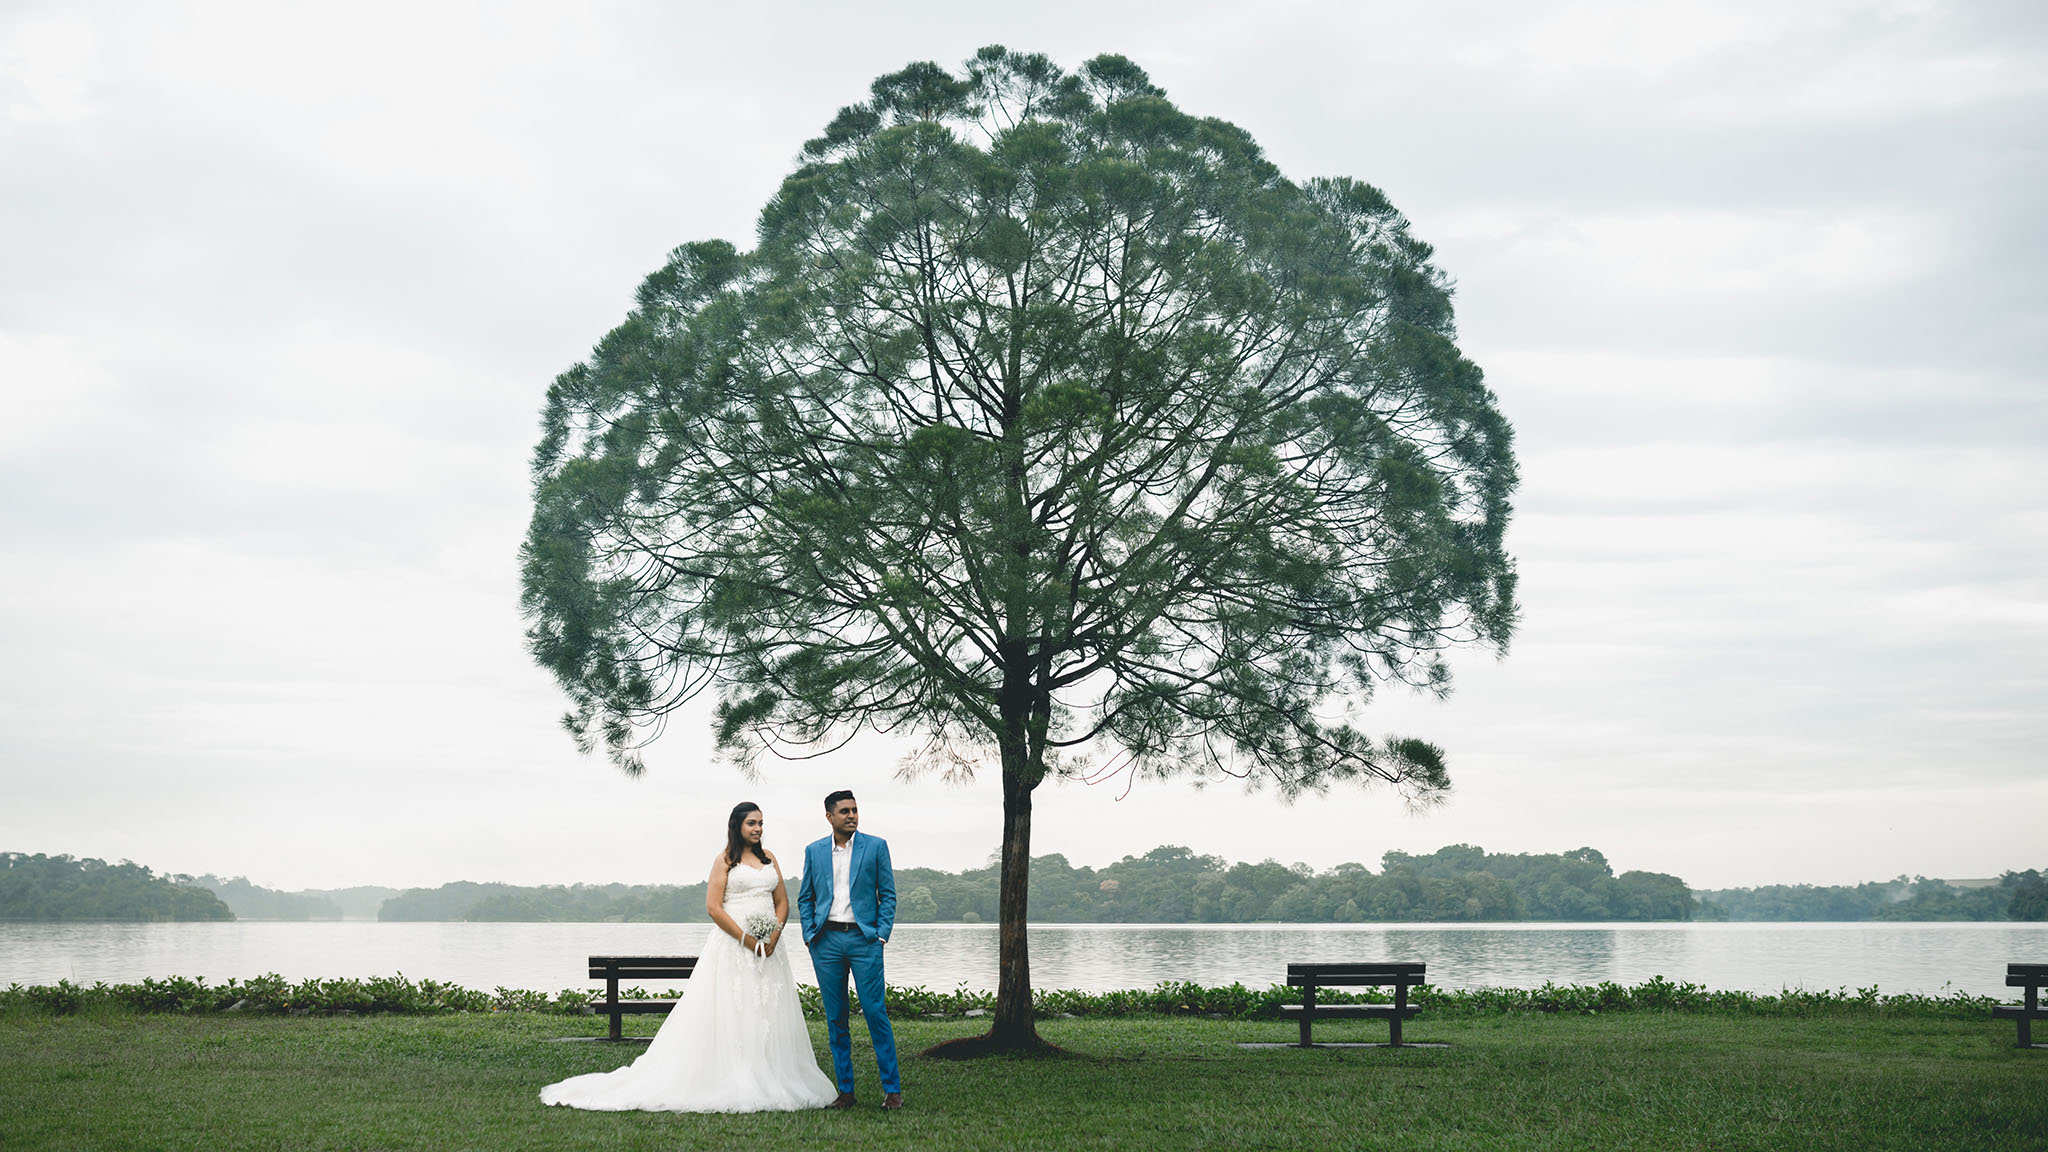 1 Prewedding upper seletar 00001.JPG